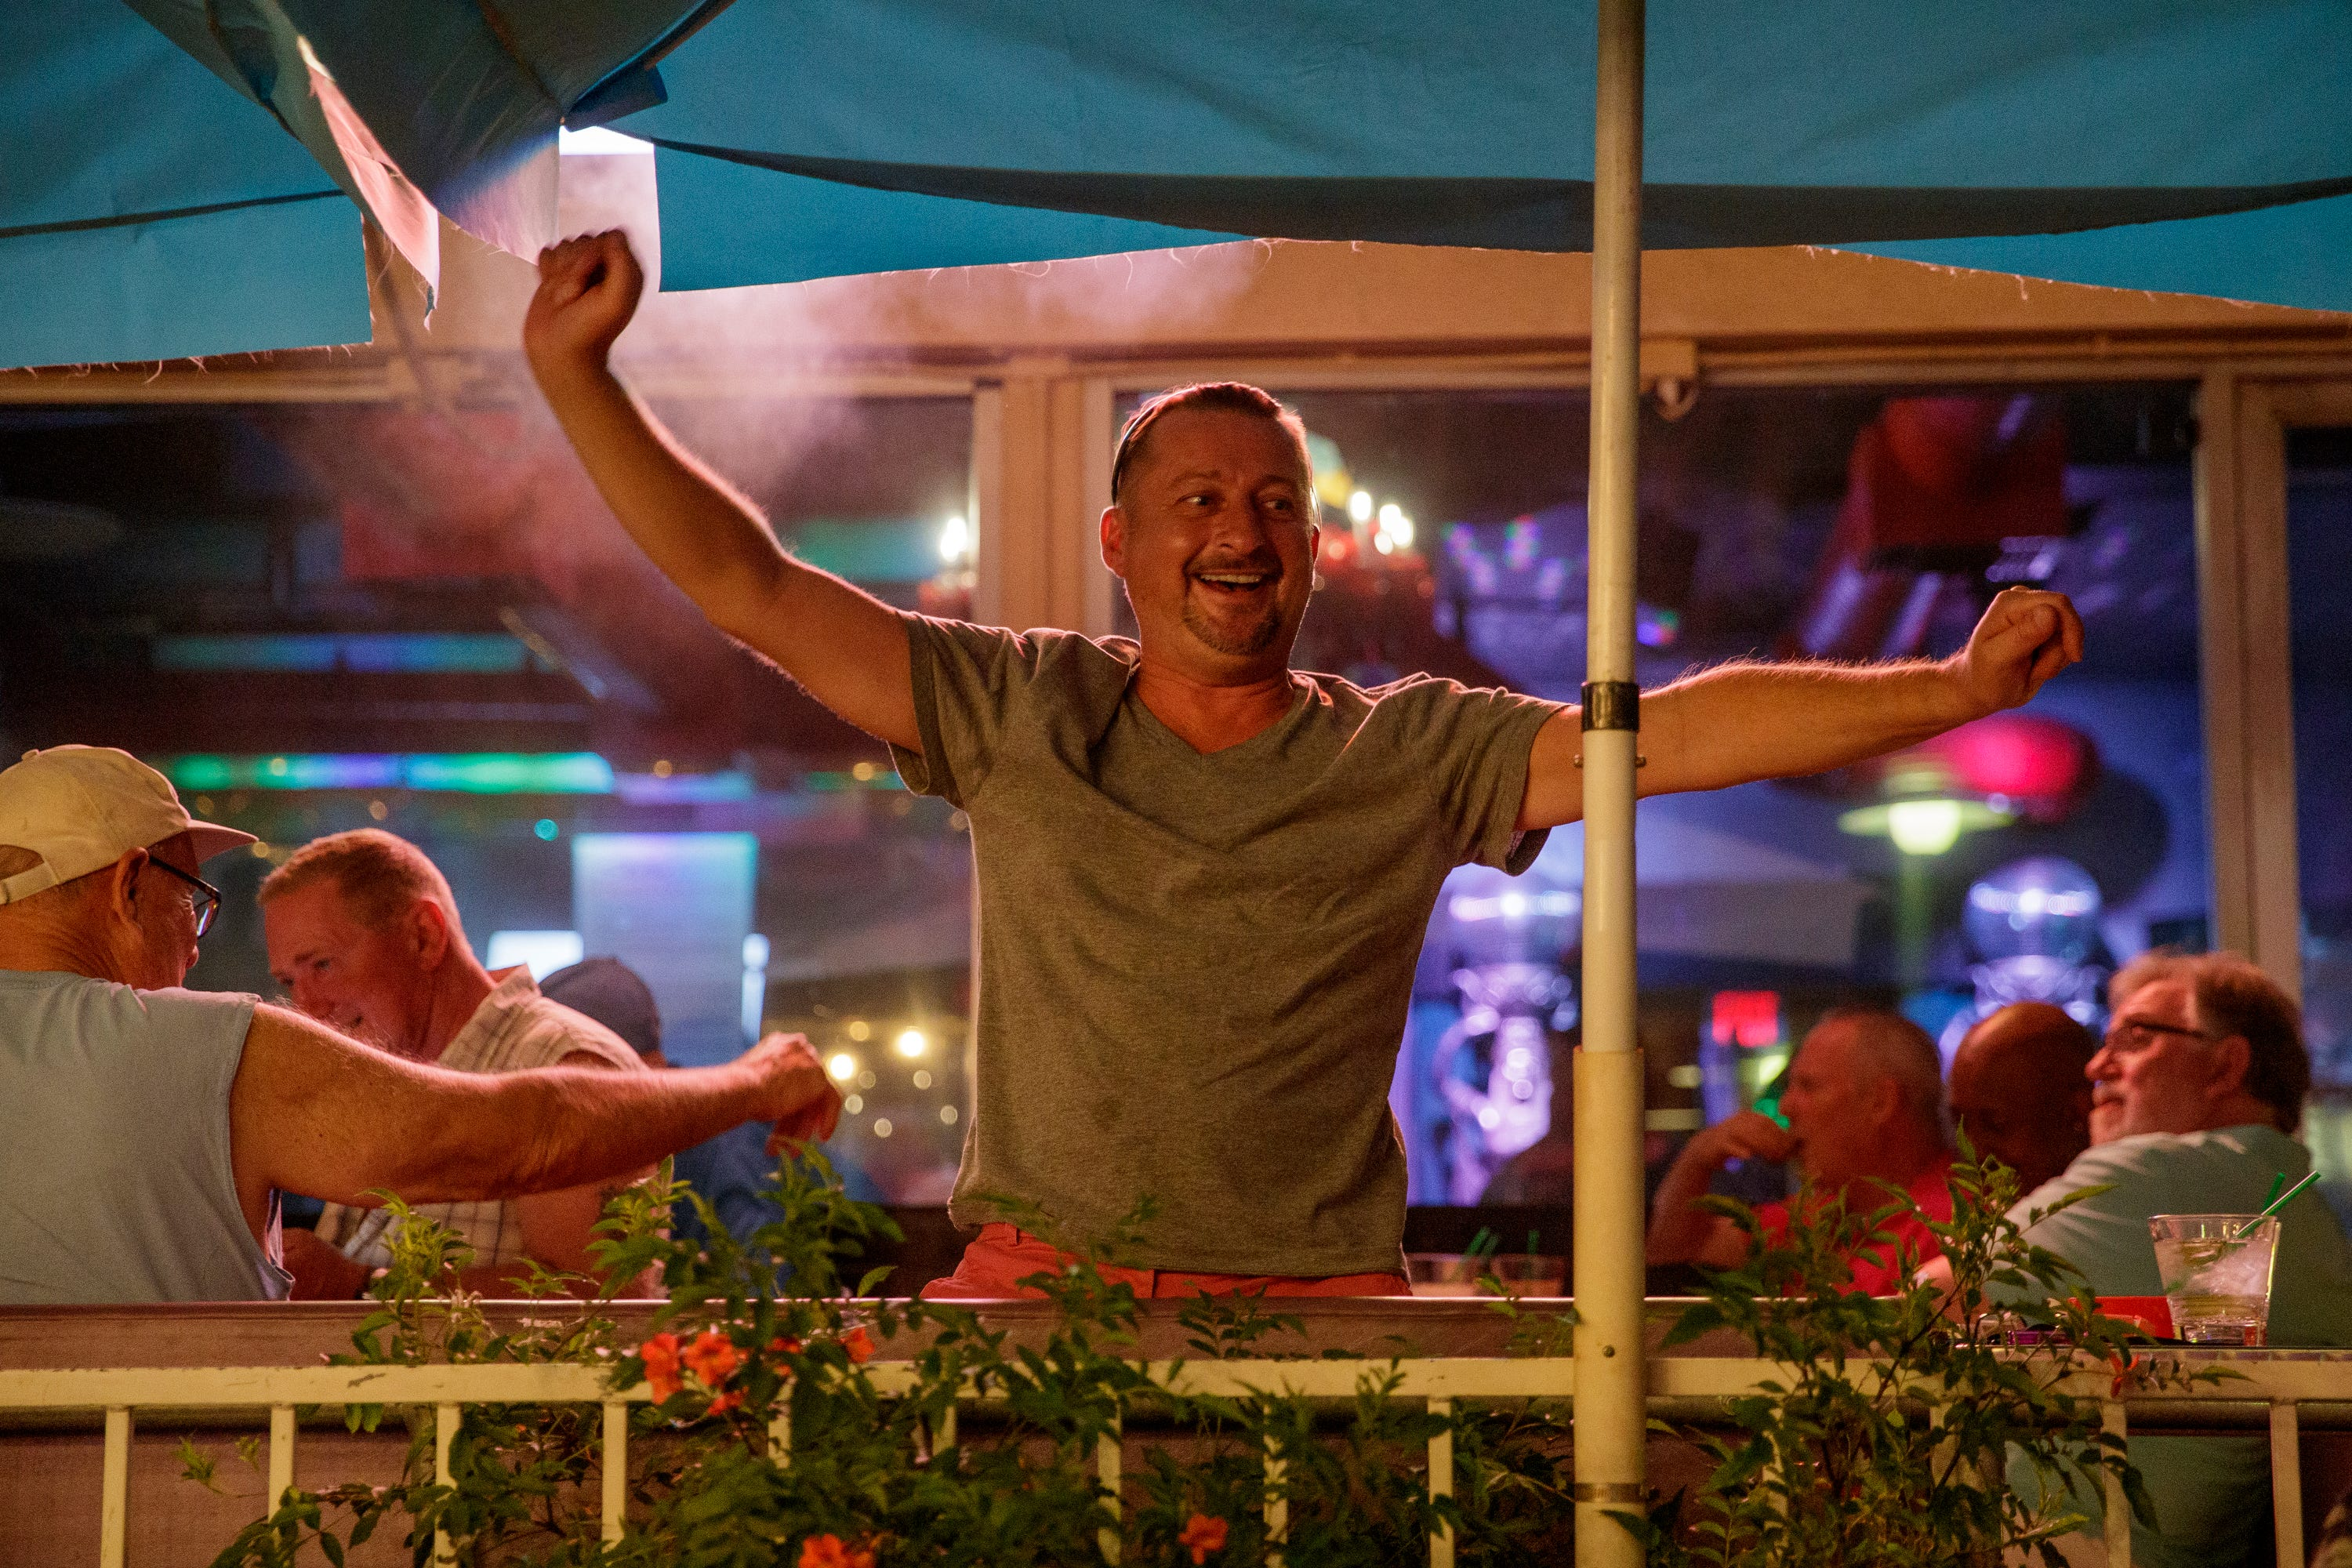 George Parizk hangs out at Streetbar in Palm Springs, Calif., on Friday, April 30, 2021.